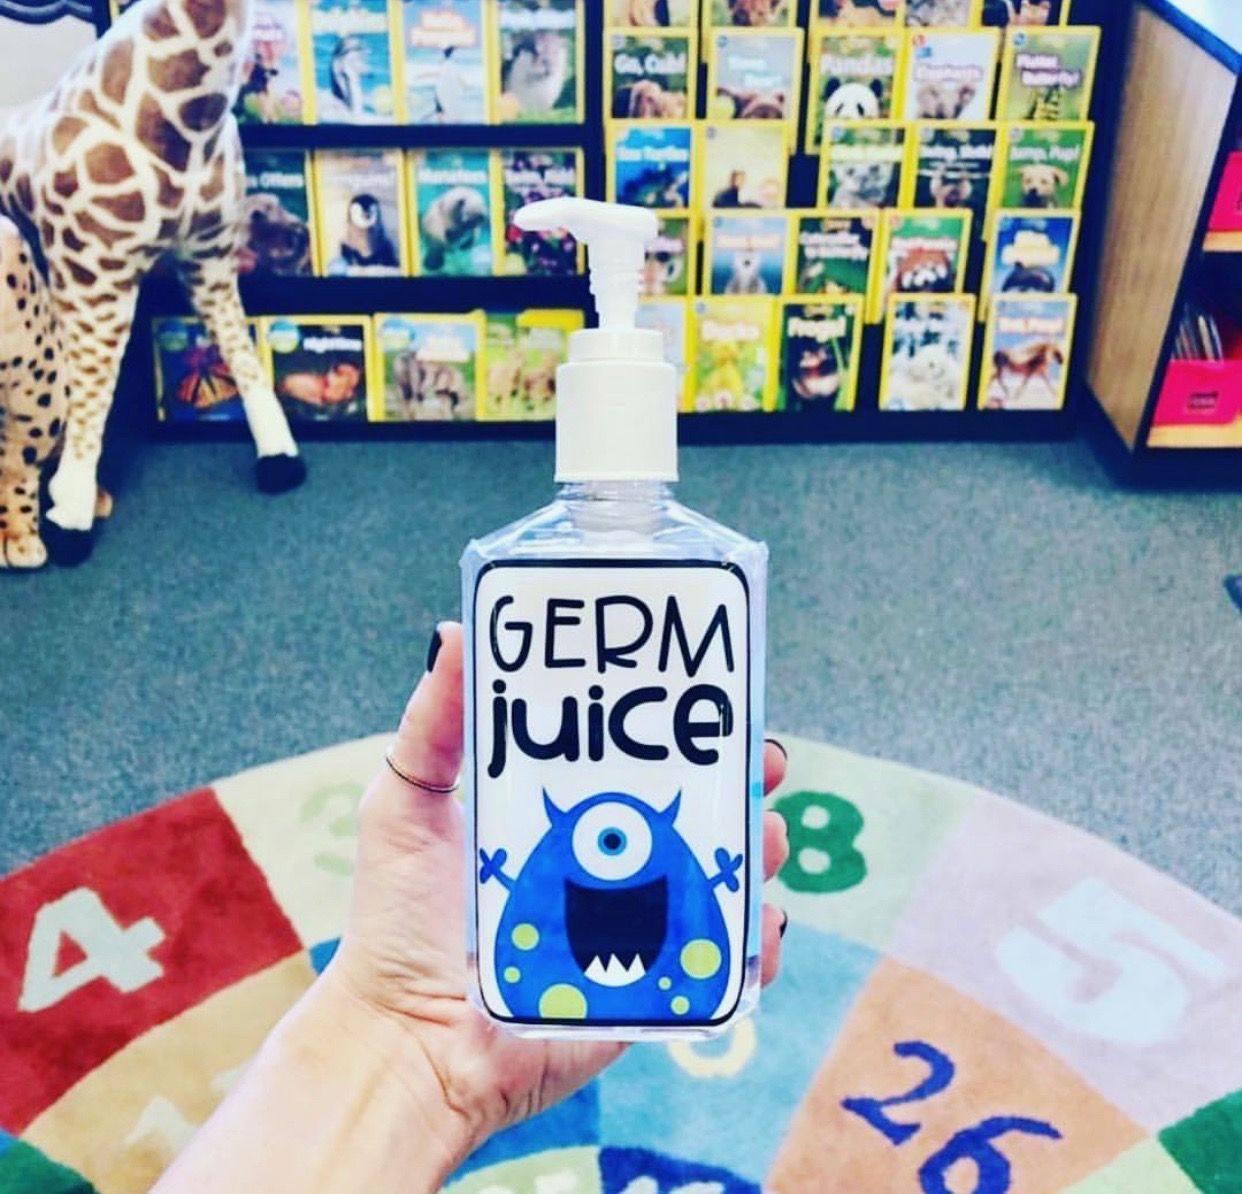 Pin By Amanda Schneider On Teaching Germ Juice Hand Sanitizer